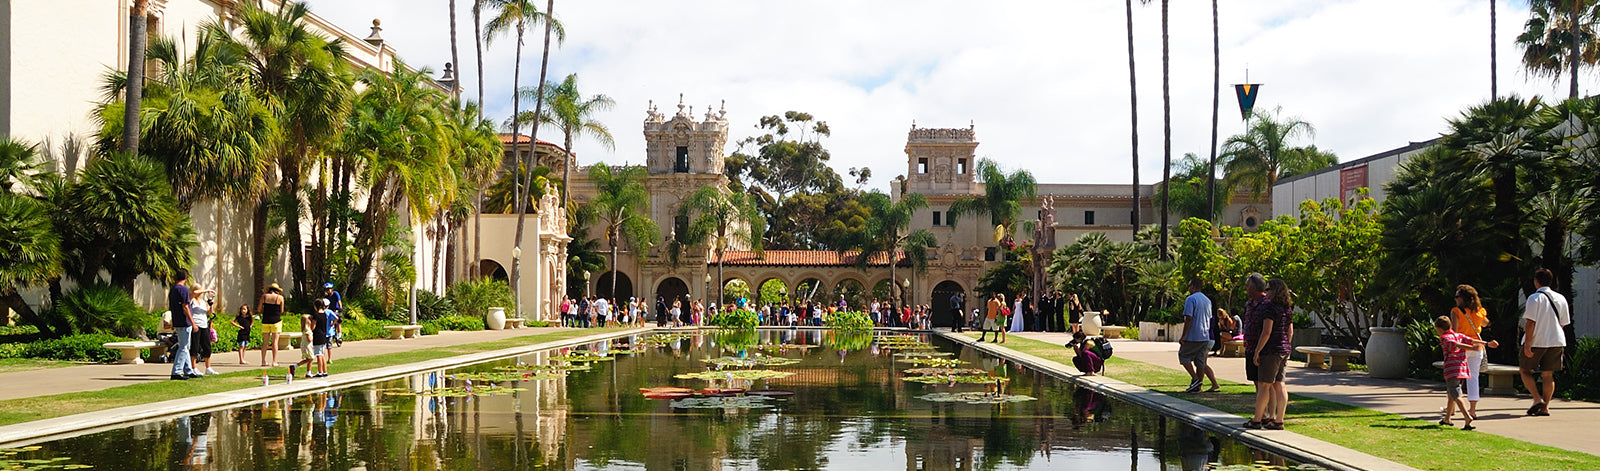 Best San Diego picnic spots to visit this spring